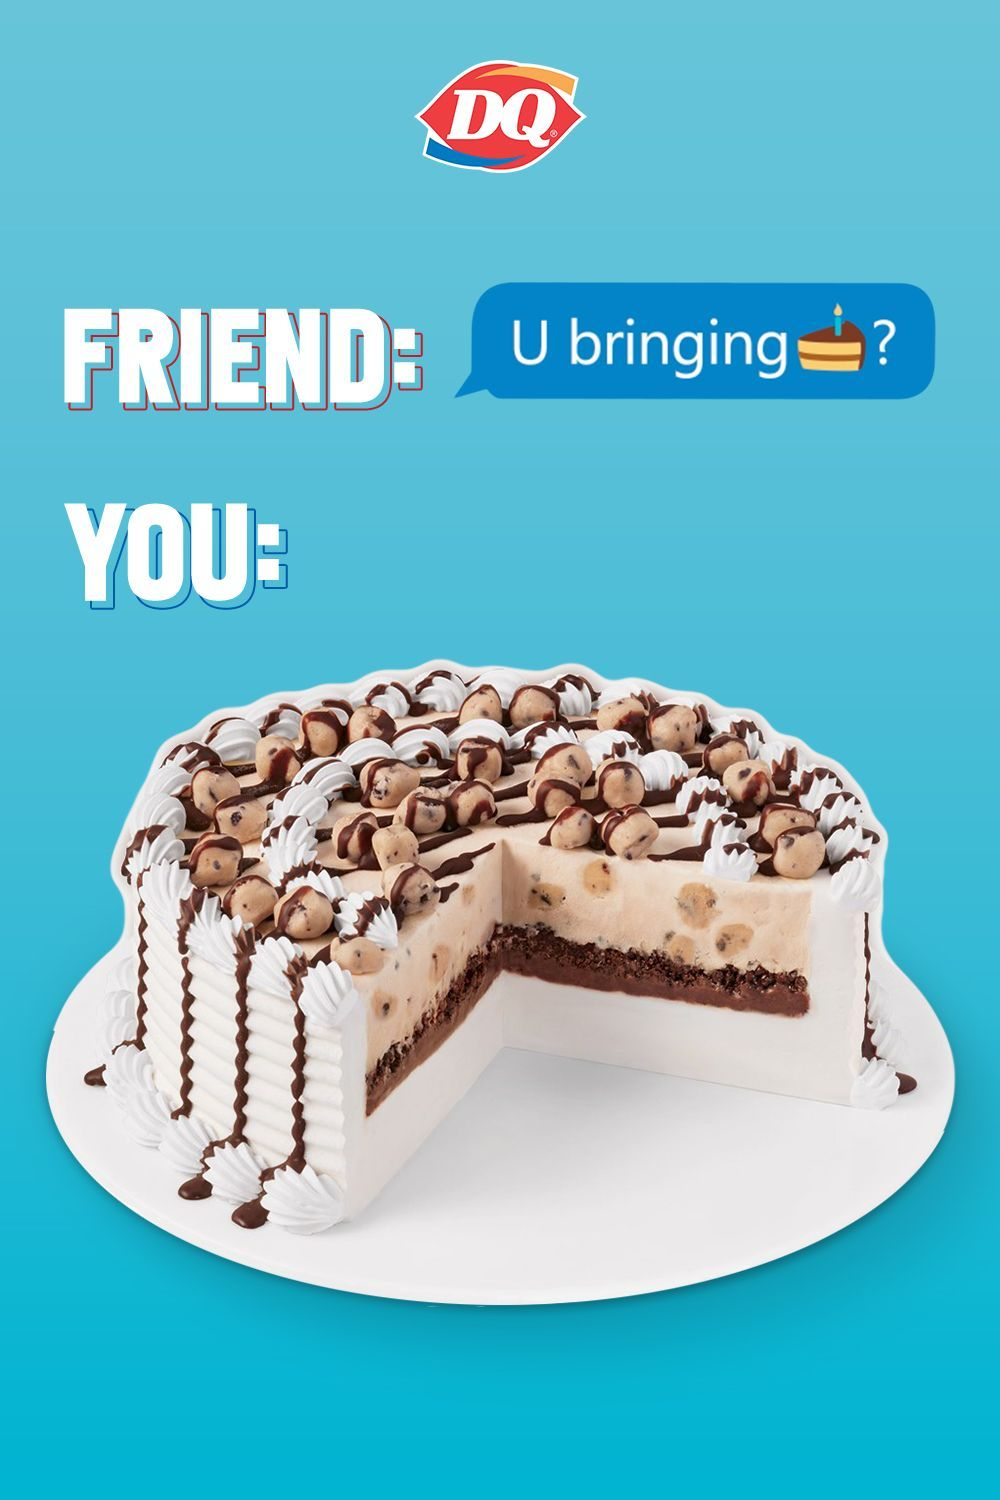 Choose from one of many delicious dq blizzard cakes to